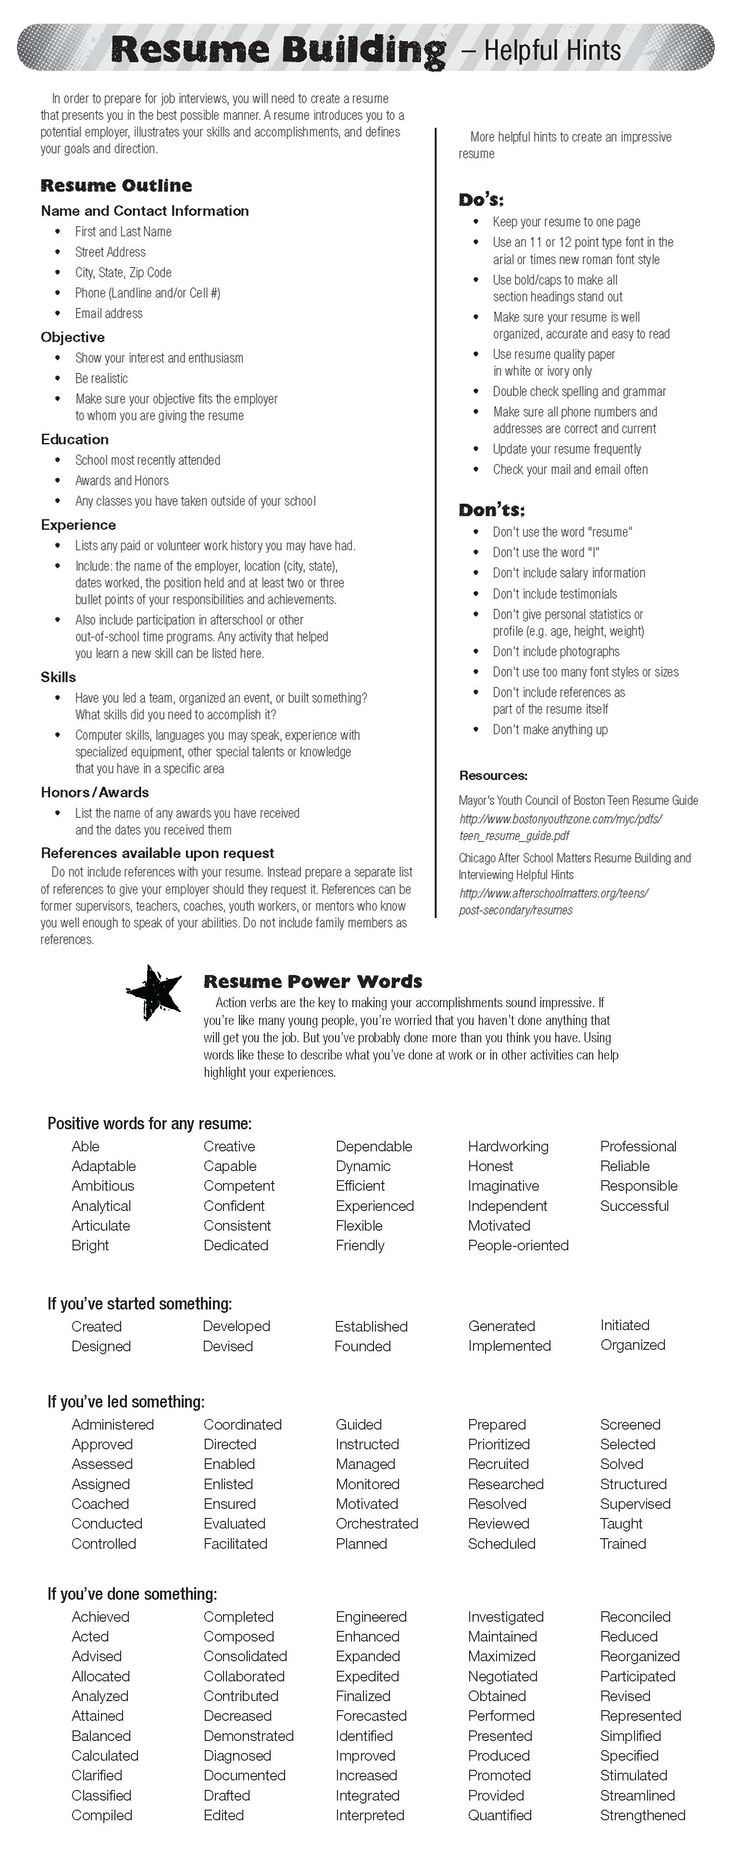 Opposenewapstandardsus  Splendid  Ideas About Resume On Pinterest  Cv Format Resume Cv And  With Goodlooking  Ideas About Resume On Pinterest  Cv Format Resume Cv And Resume Templates With Nice Human Resources Resume Objective Also Pre Med Resume In Addition View Resumes Online For Free And Experienced Resume As Well As Best Resume Example Additionally What To Include On Resume From Pinterestcom With Opposenewapstandardsus  Goodlooking  Ideas About Resume On Pinterest  Cv Format Resume Cv And  With Nice  Ideas About Resume On Pinterest  Cv Format Resume Cv And Resume Templates And Splendid Human Resources Resume Objective Also Pre Med Resume In Addition View Resumes Online For Free From Pinterestcom